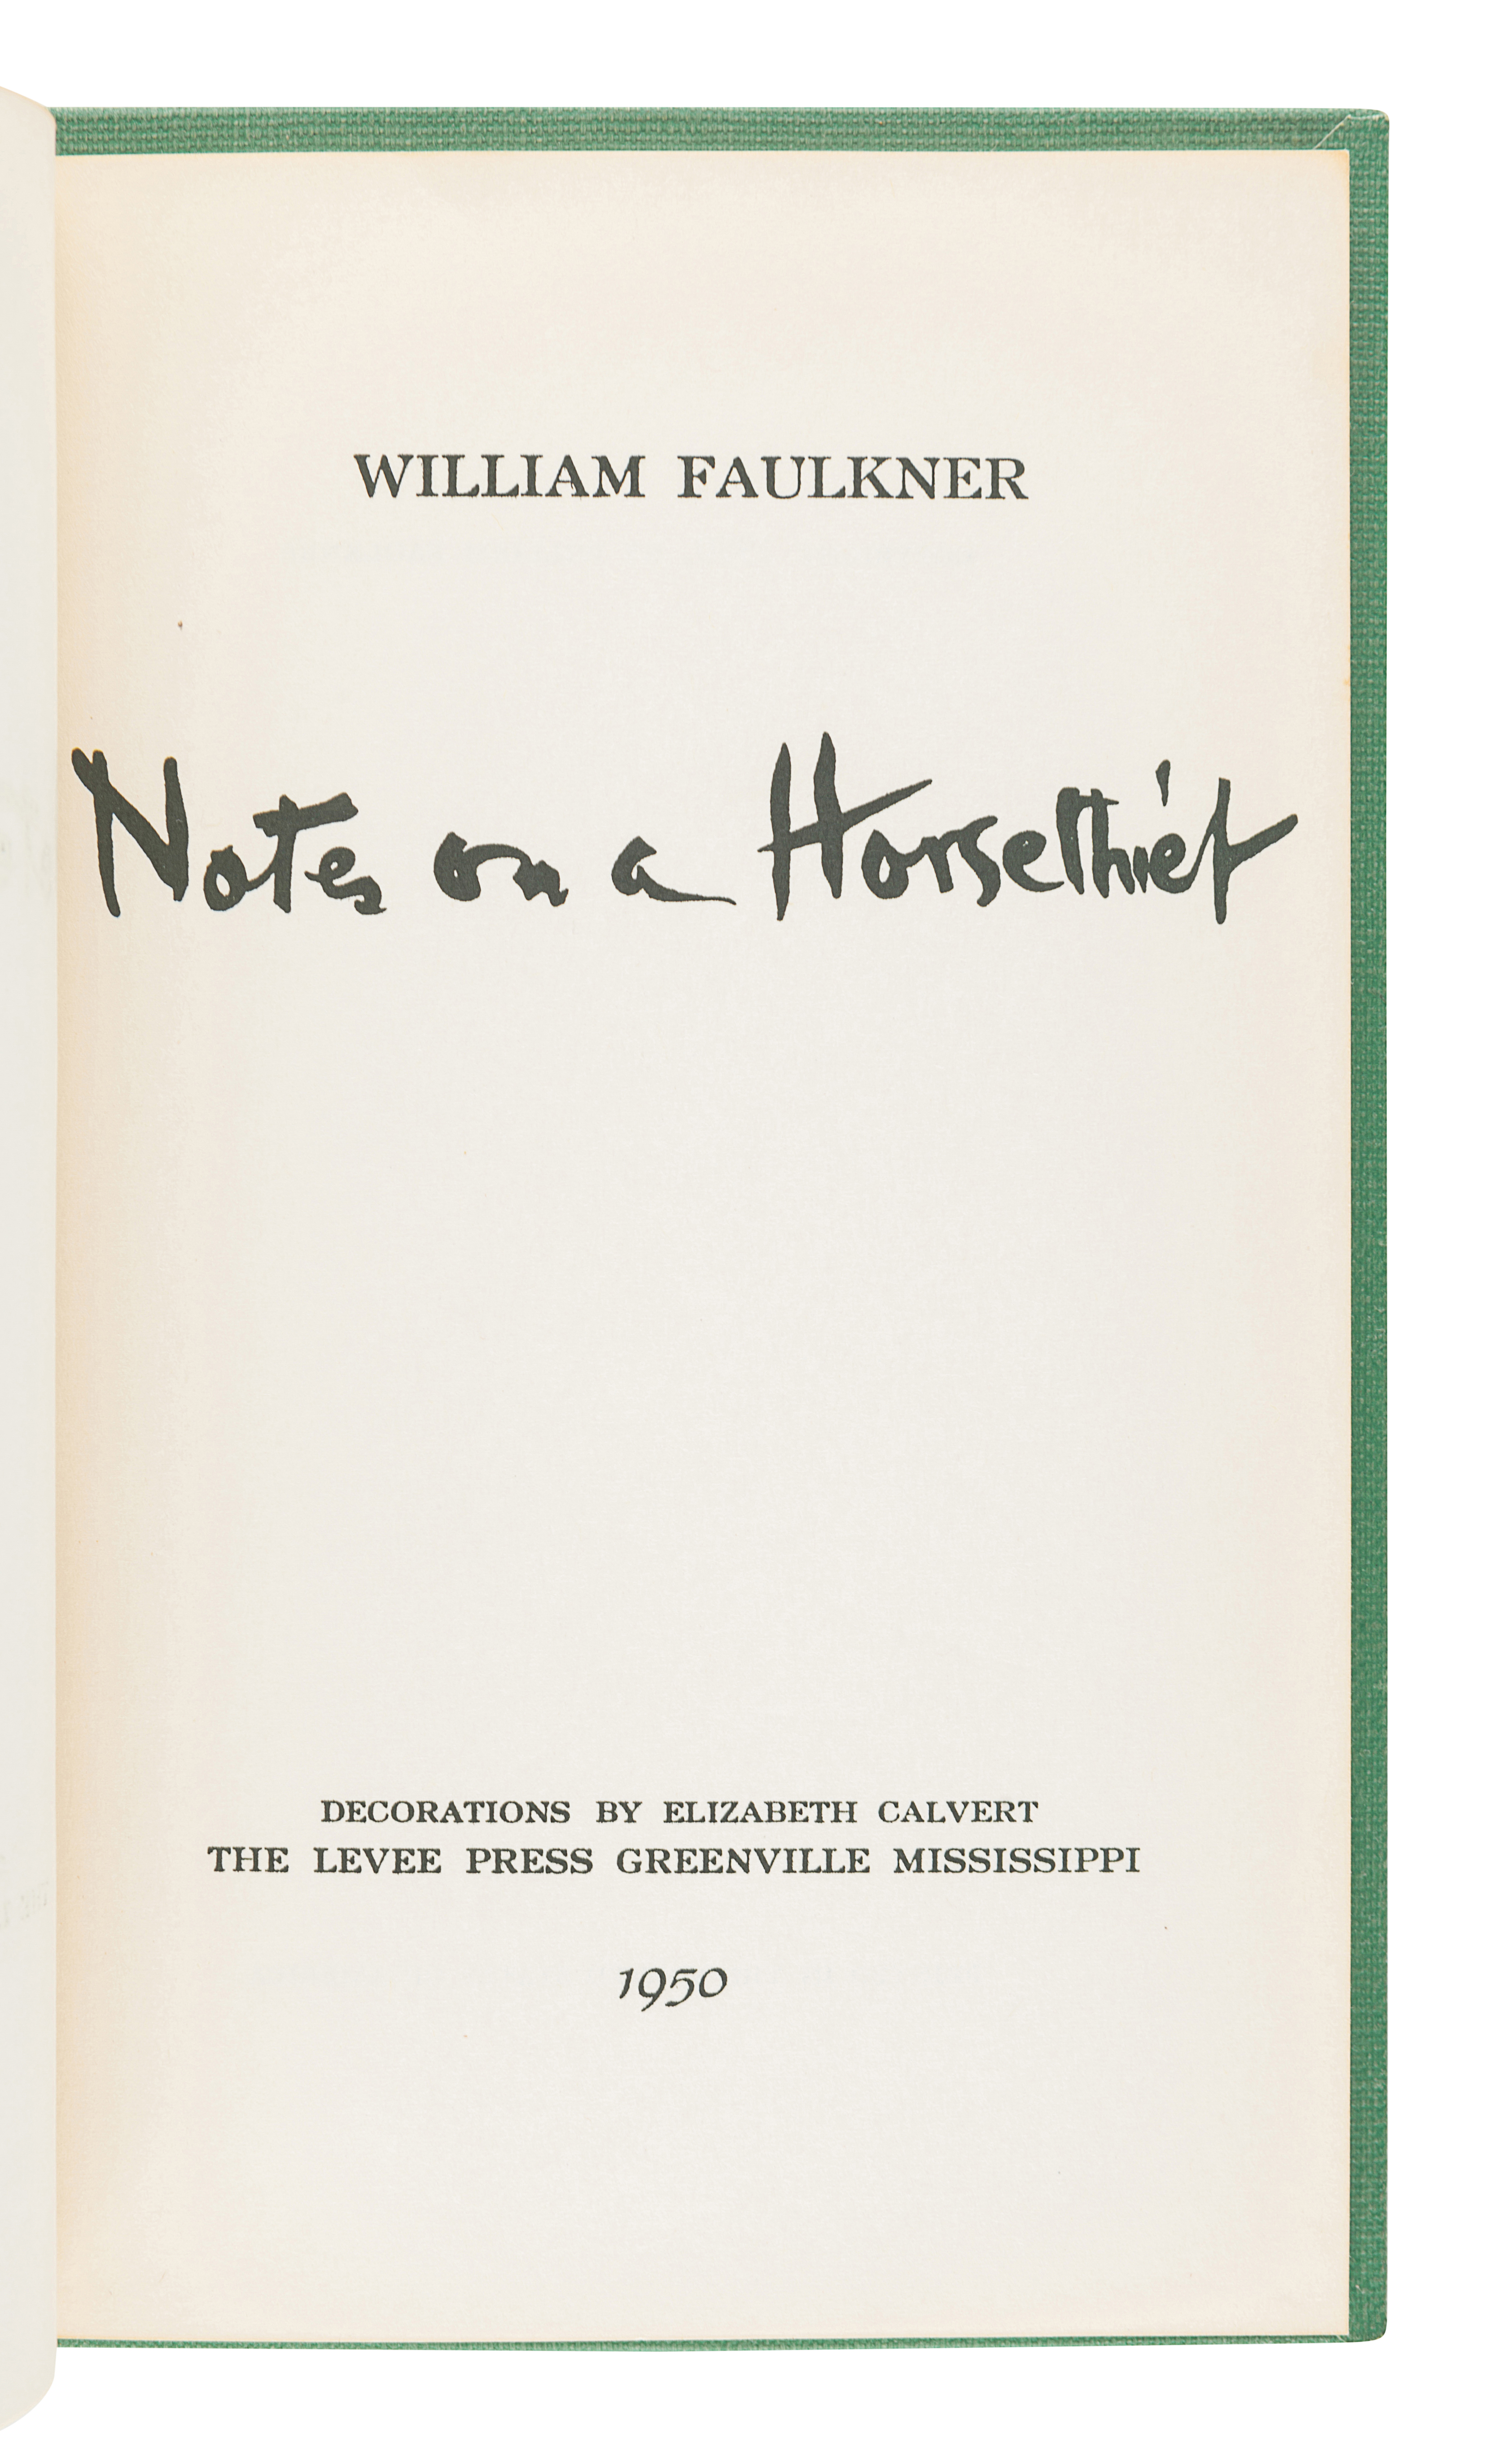 FAULKNER, William (1897-1962). Notes on a Horse Thief. Greenville, MS: The Levee Press, 1950.